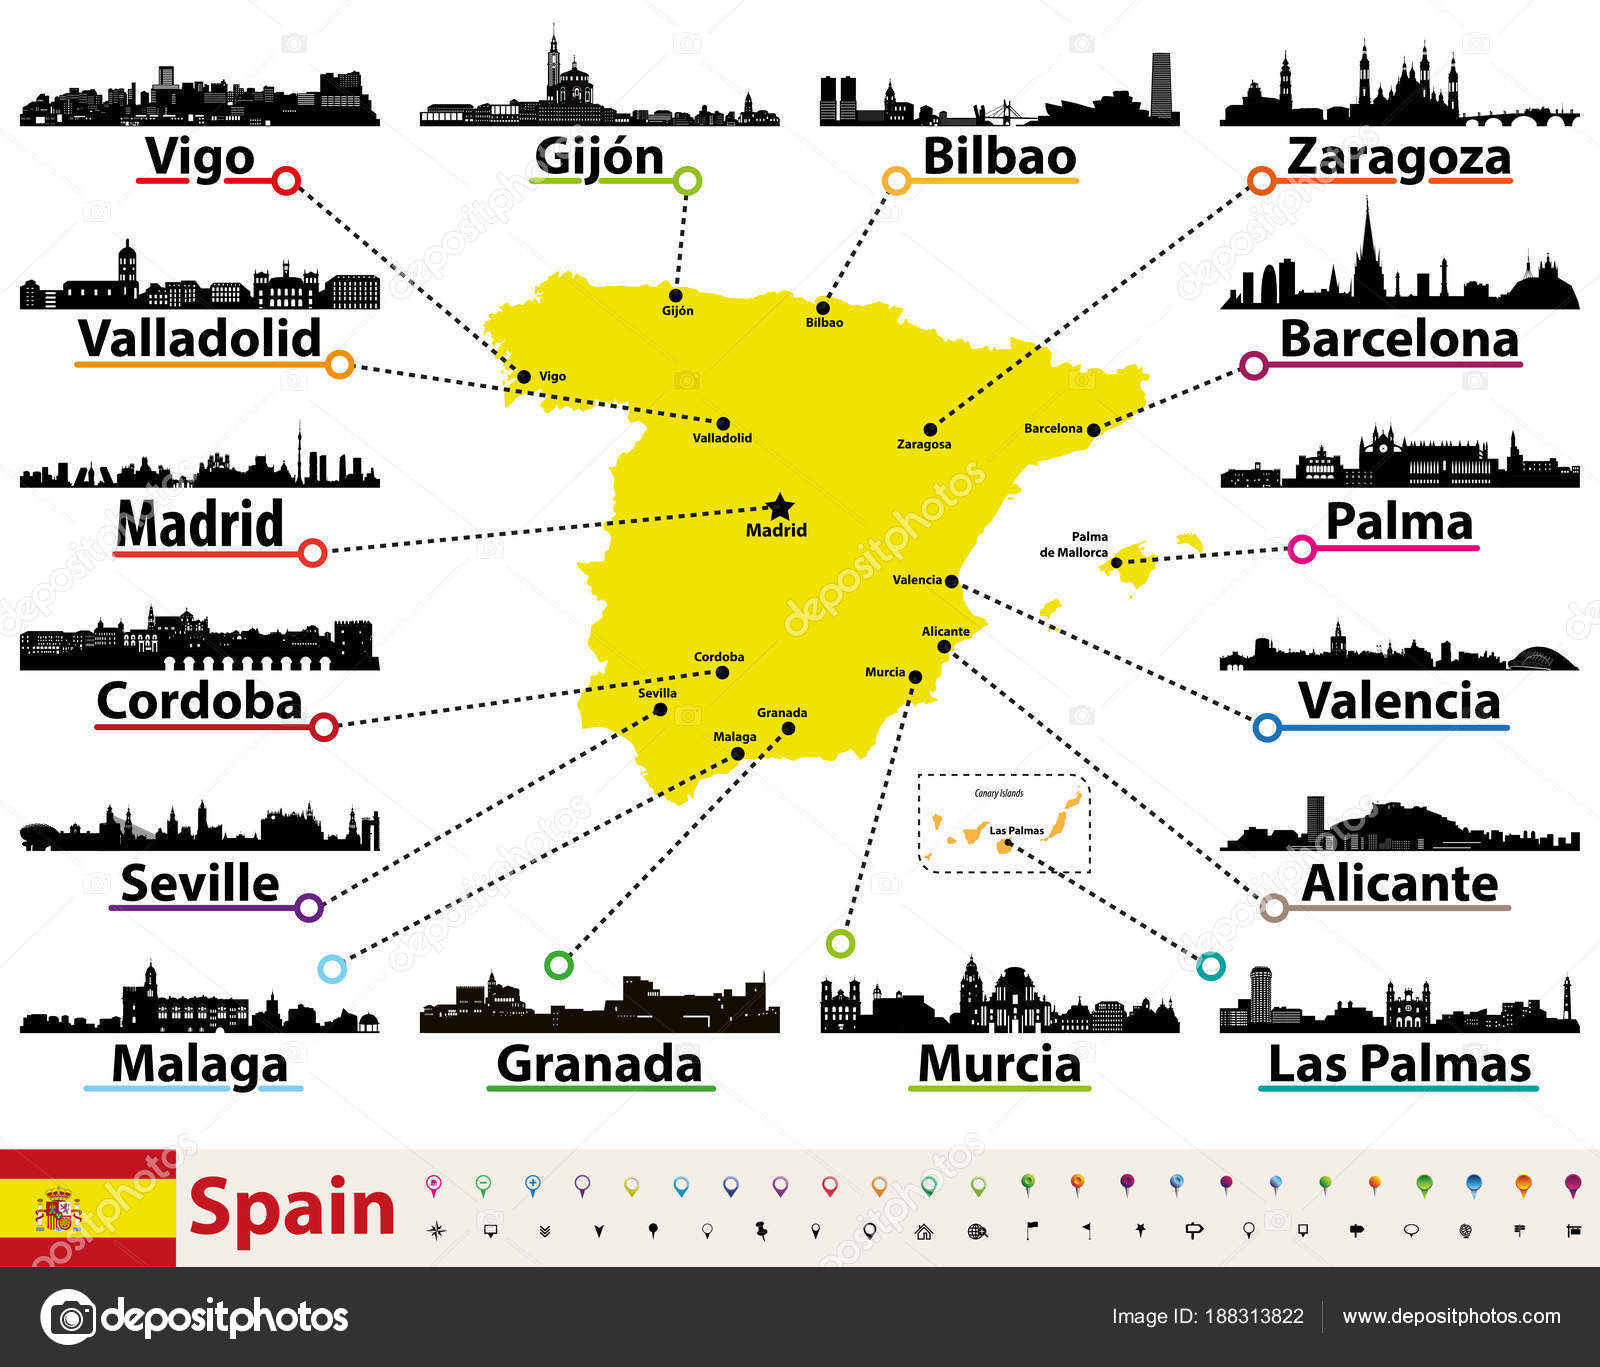 Vector Map Spain Largest Cities Skylines Silhouettes — Stock ... on spain map regions and cities, map of atlantic ocean cities, spain major cities, map of democratic republic of congo cities, map of ussr cities, map of oceania cities, map of latin america cities, map of niger cities, map of the us cities, map of the carolinas cities, pamplona spain map cities, map of palau cities, map of new brunswick canada cities, map of mexican riviera cities, map of guyana cities, map of burundi cities, map of s korea cities, map of kosovo cities, map of islam cities, map europe cities,